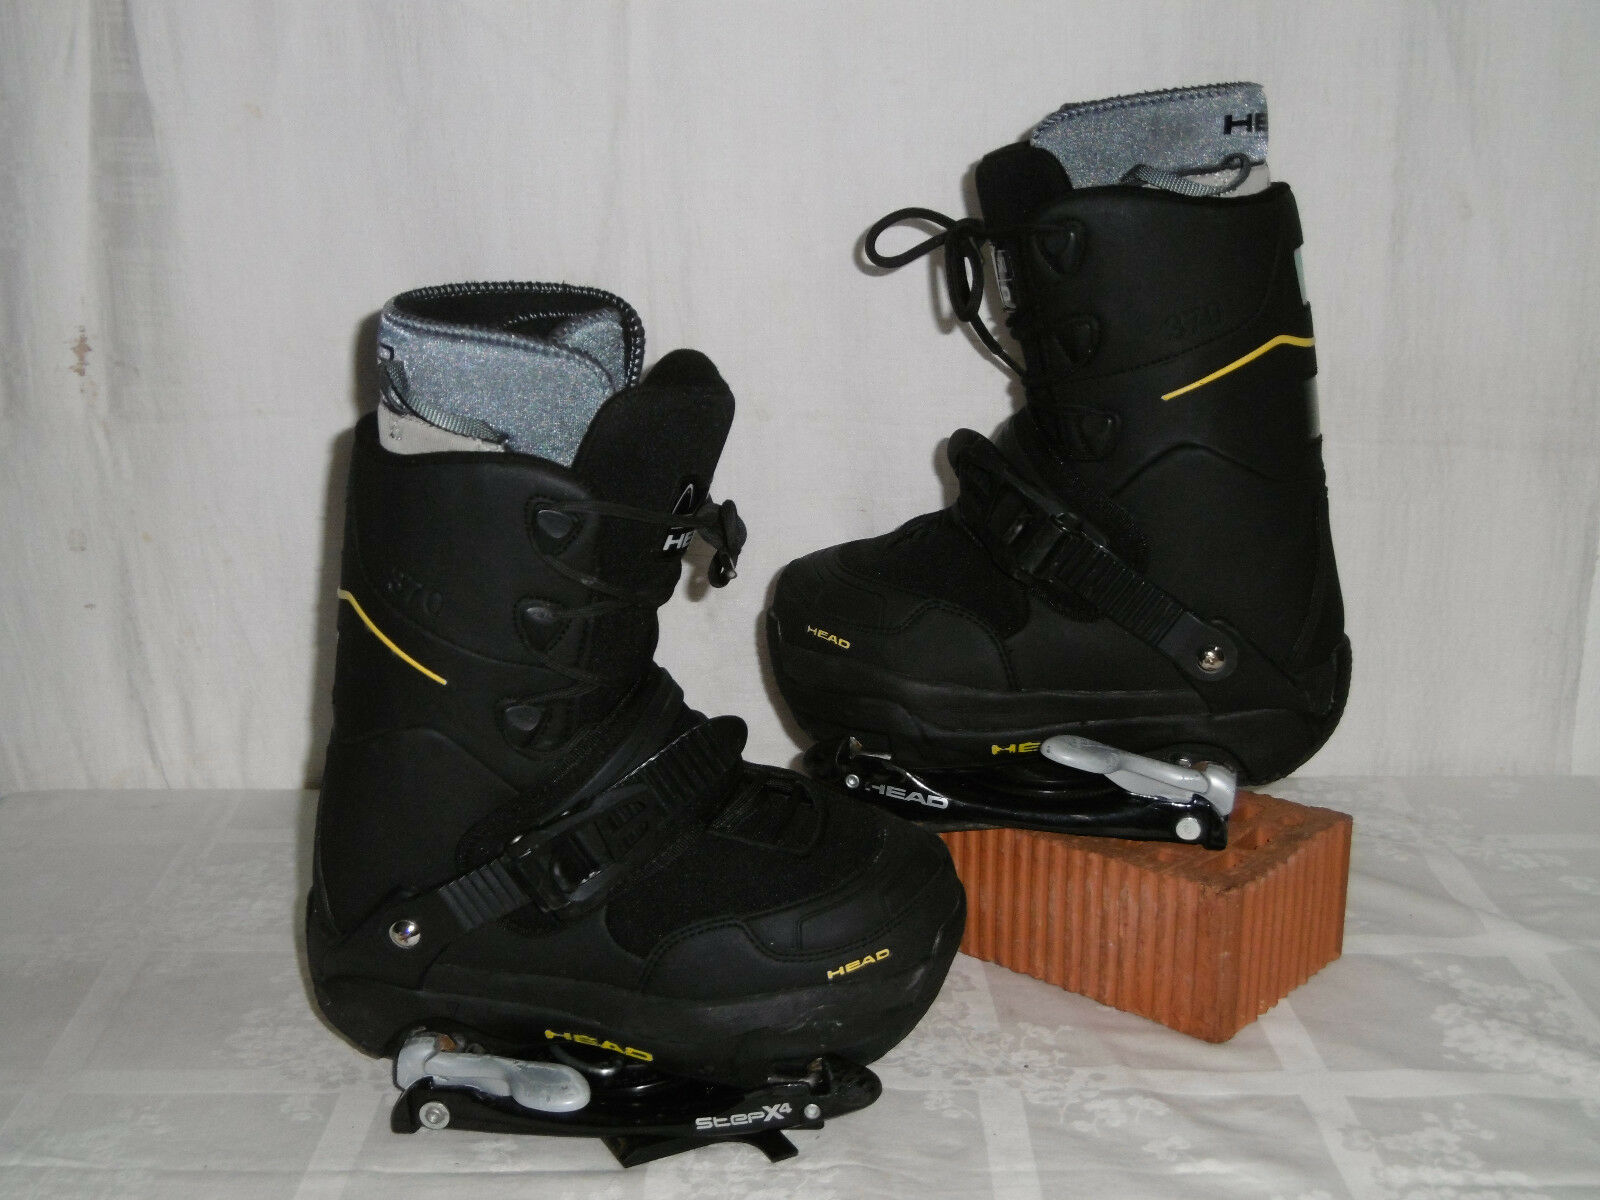 HEAD   370   JUNIOR SNOWBOARD STEP-IN Stiefel GR  35 + HEAD STEP-IN BINDUNG